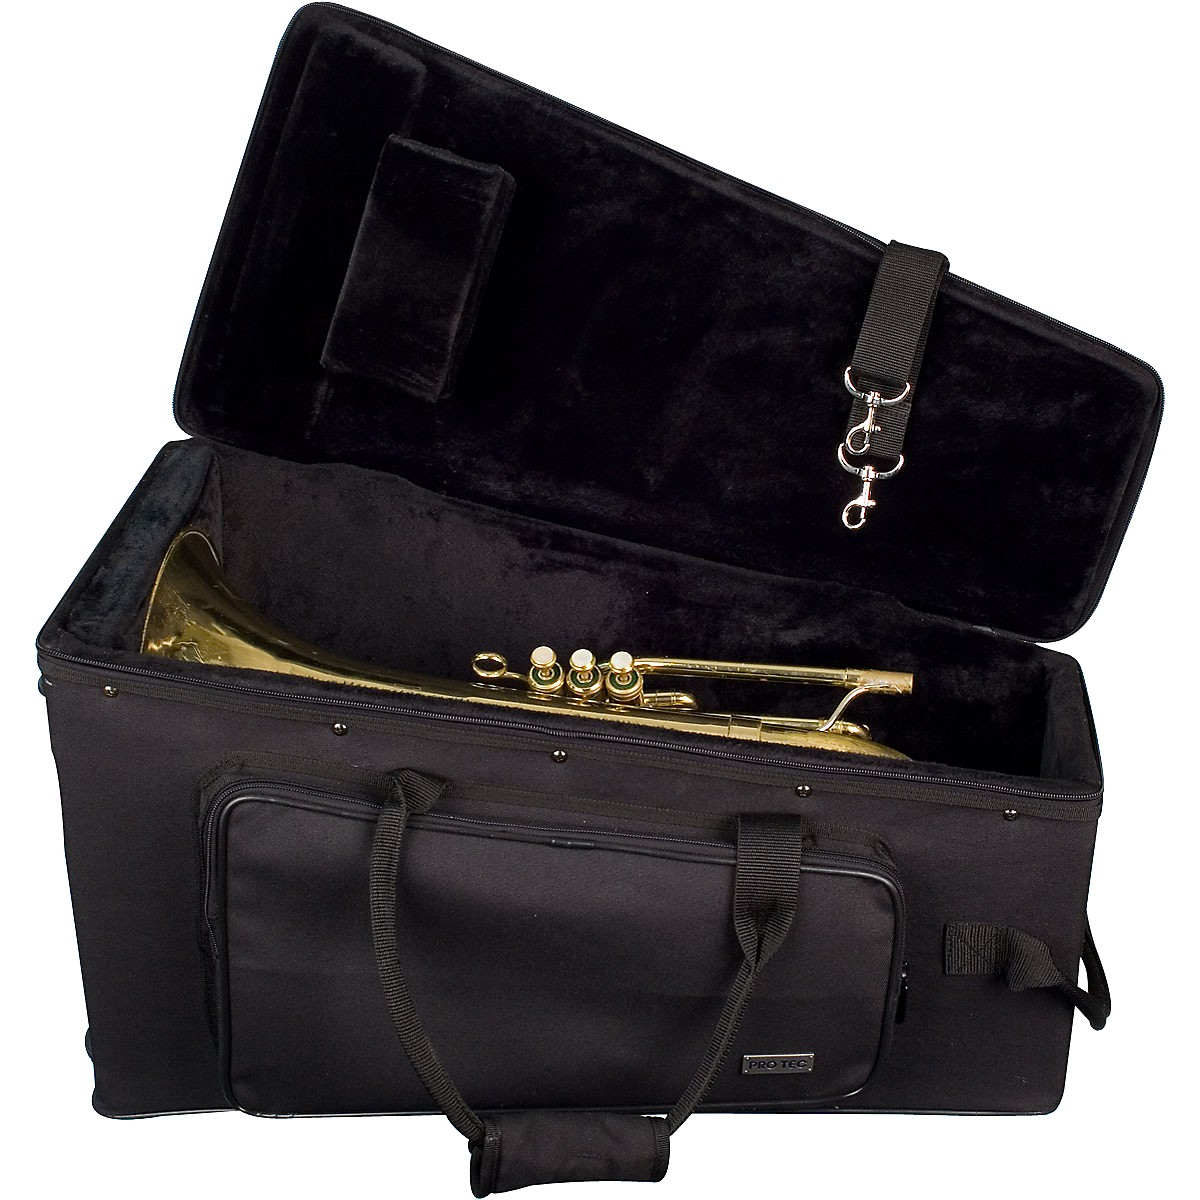 Protec Marching Baritone PRO PAC Case